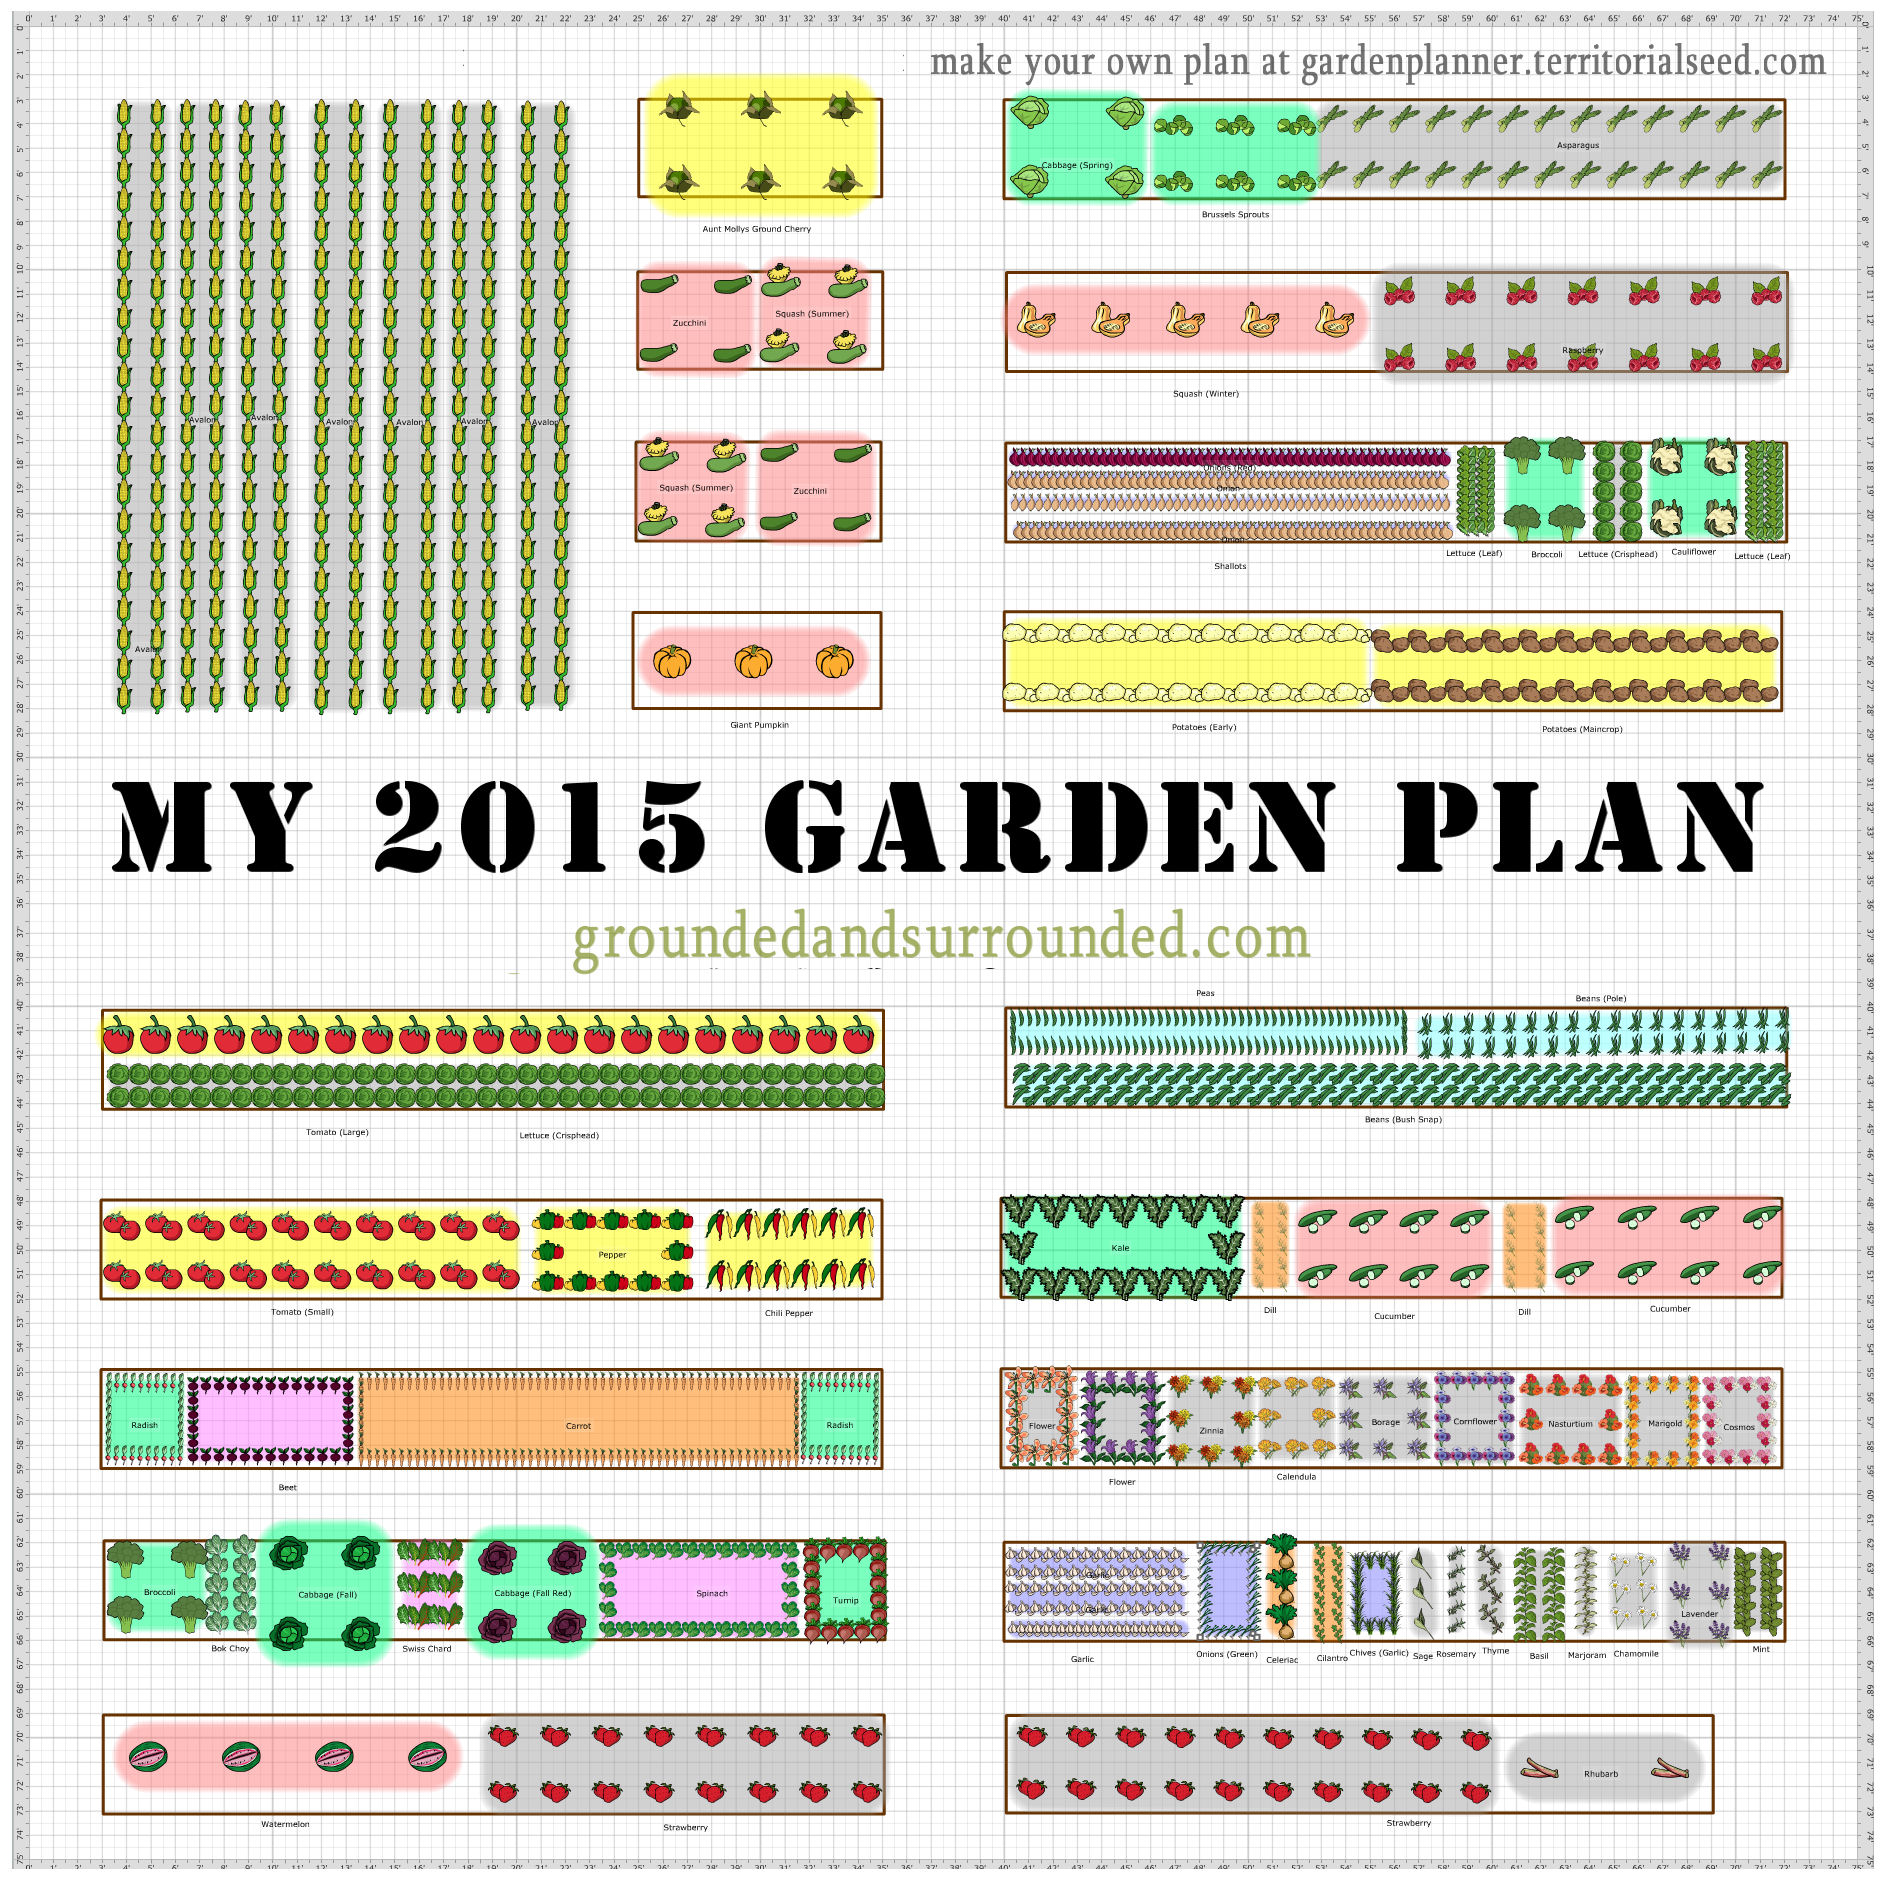 My 5 000 sq ft vegetable garden plan grounded surrounded for Home and garden planner